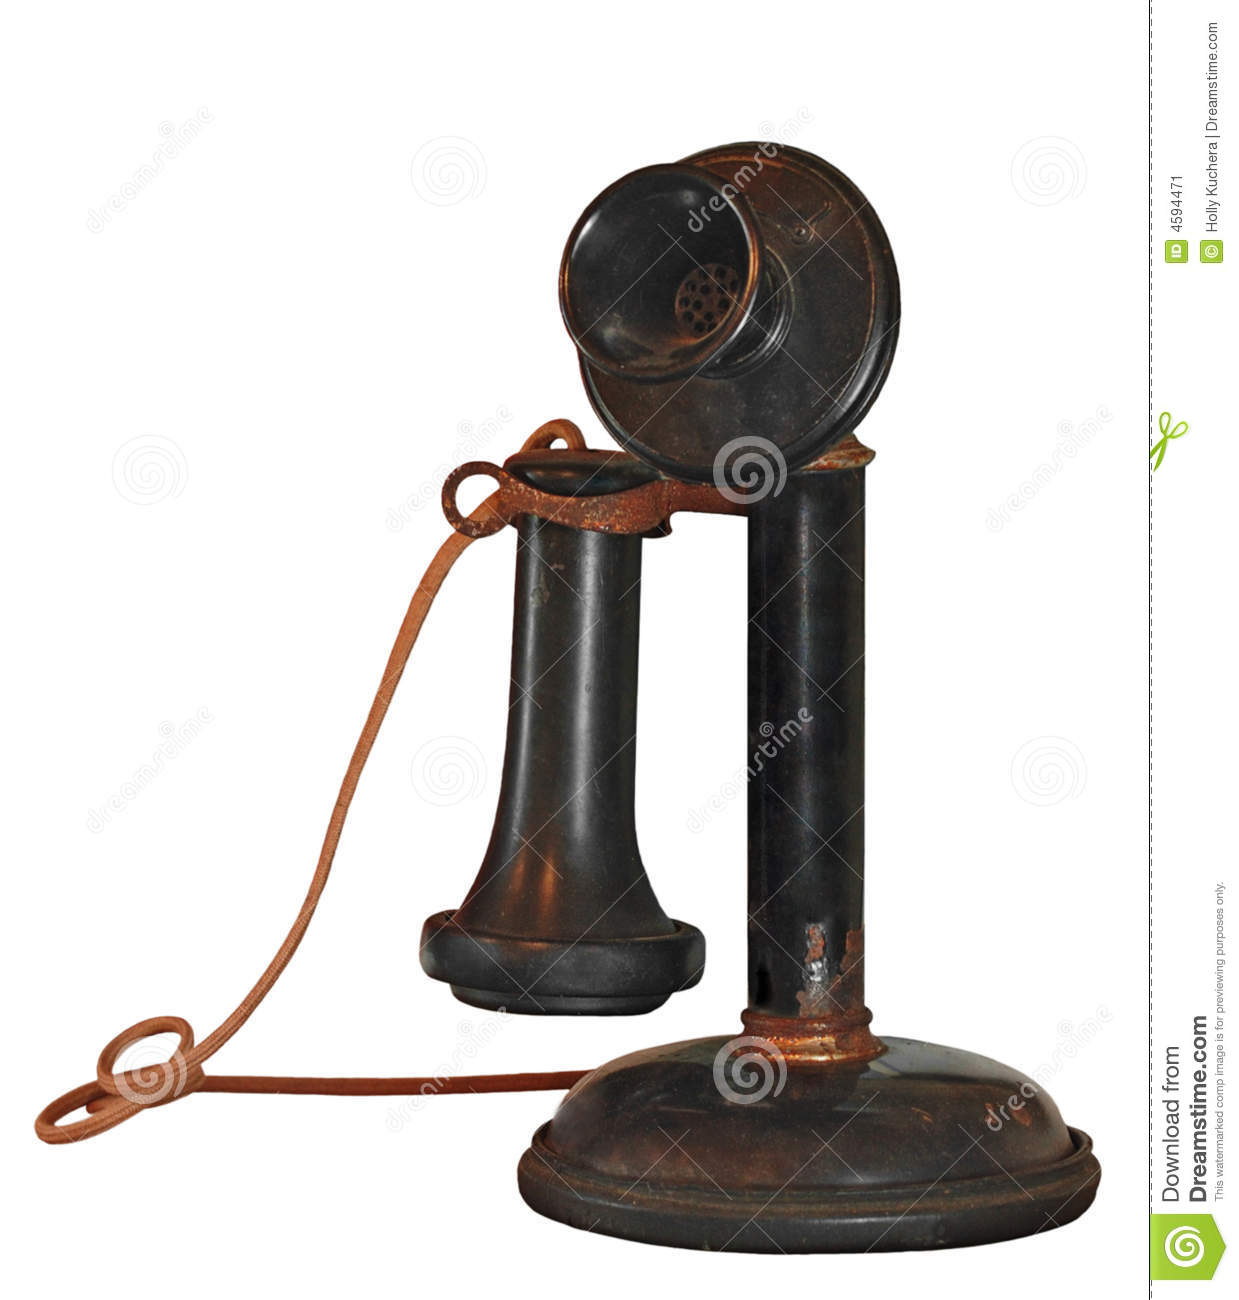 1900's Candlestick Telephone On White Stock Image - Image: 4594471